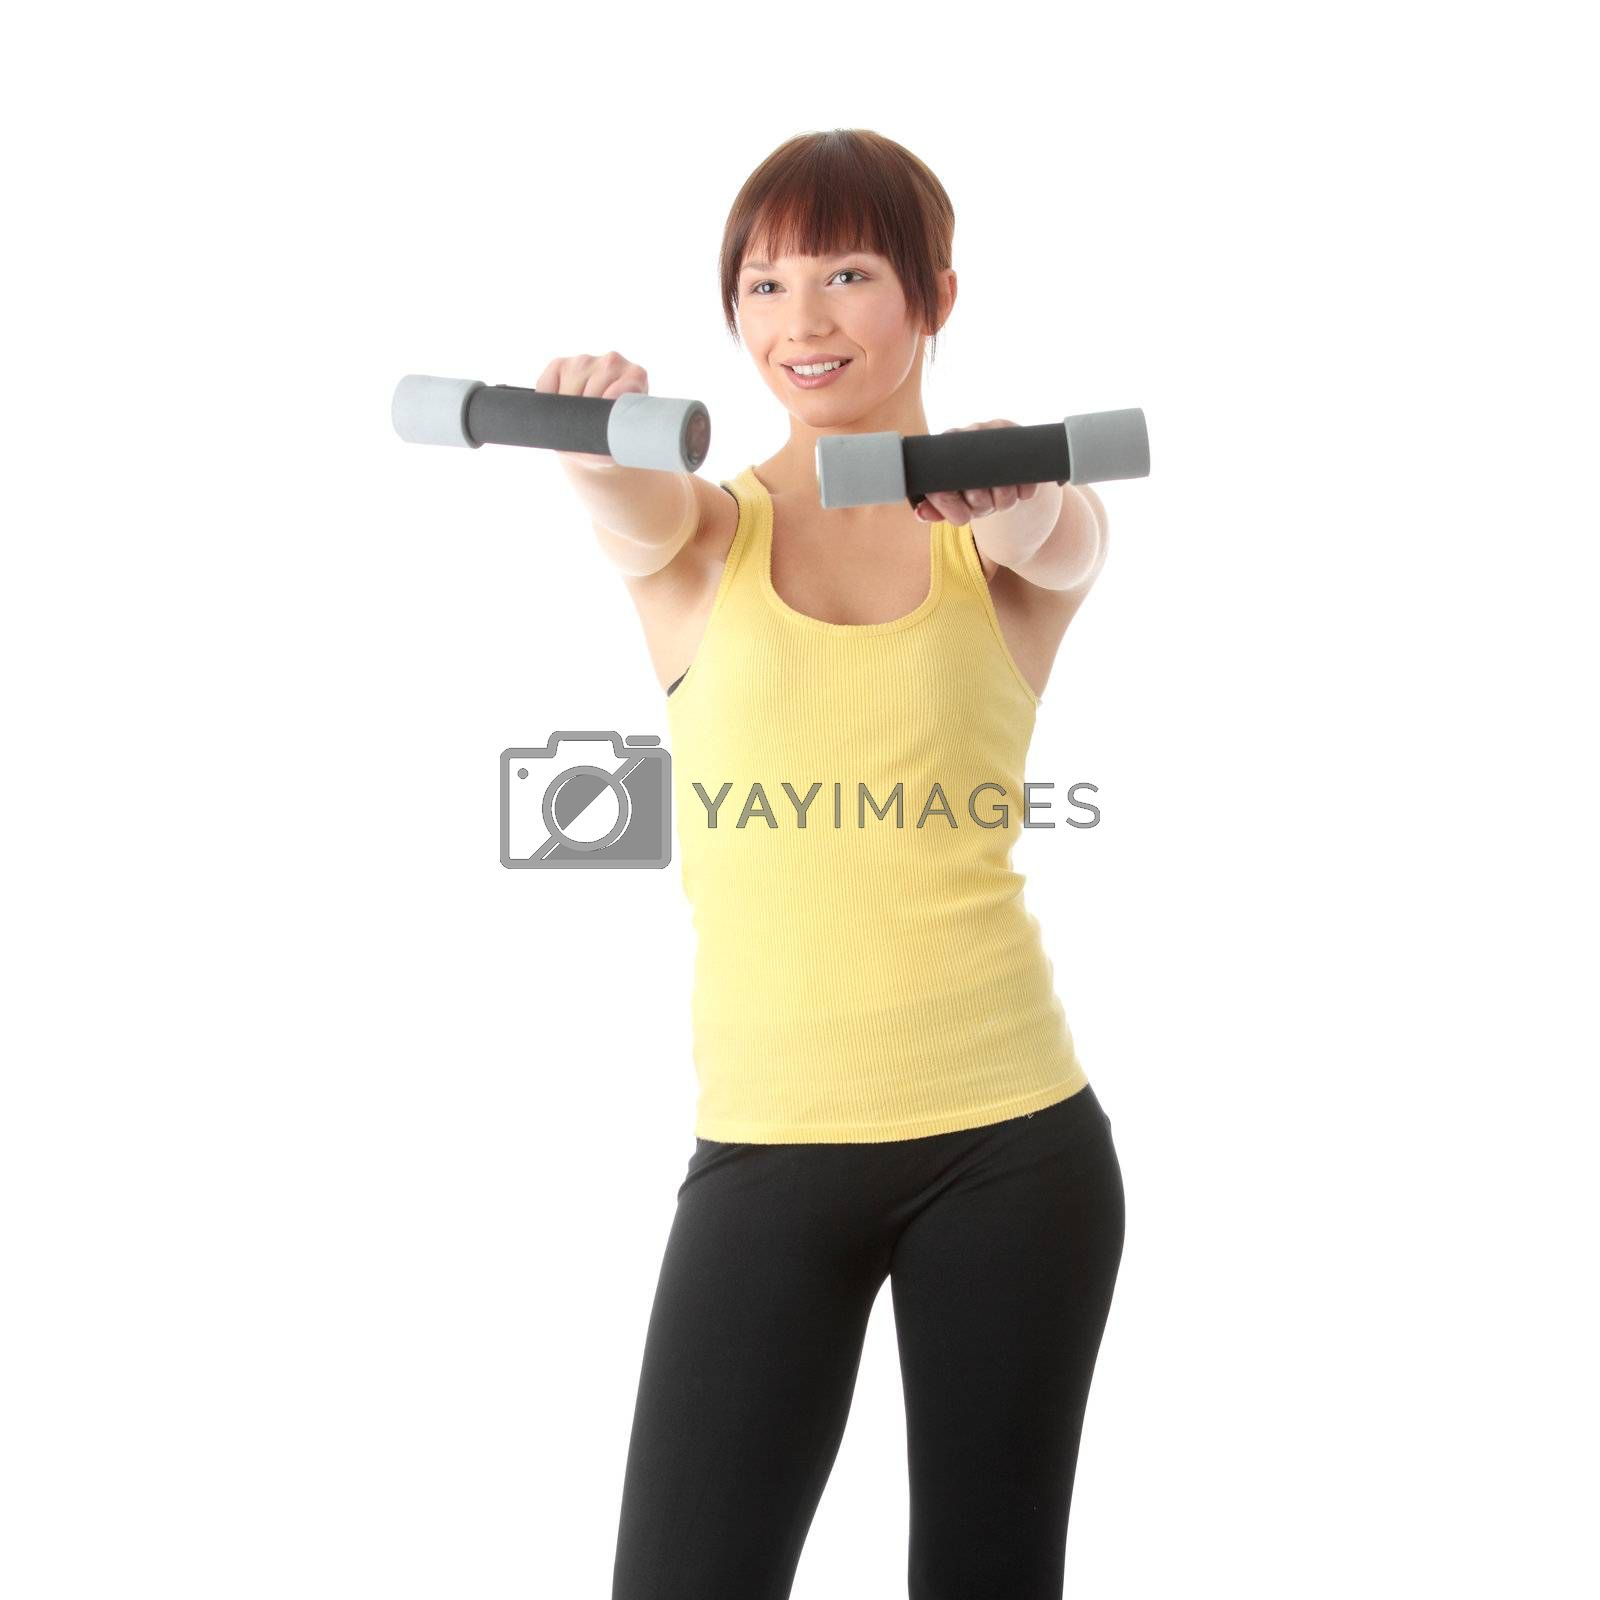 Royalty free image of Fitness by BDS